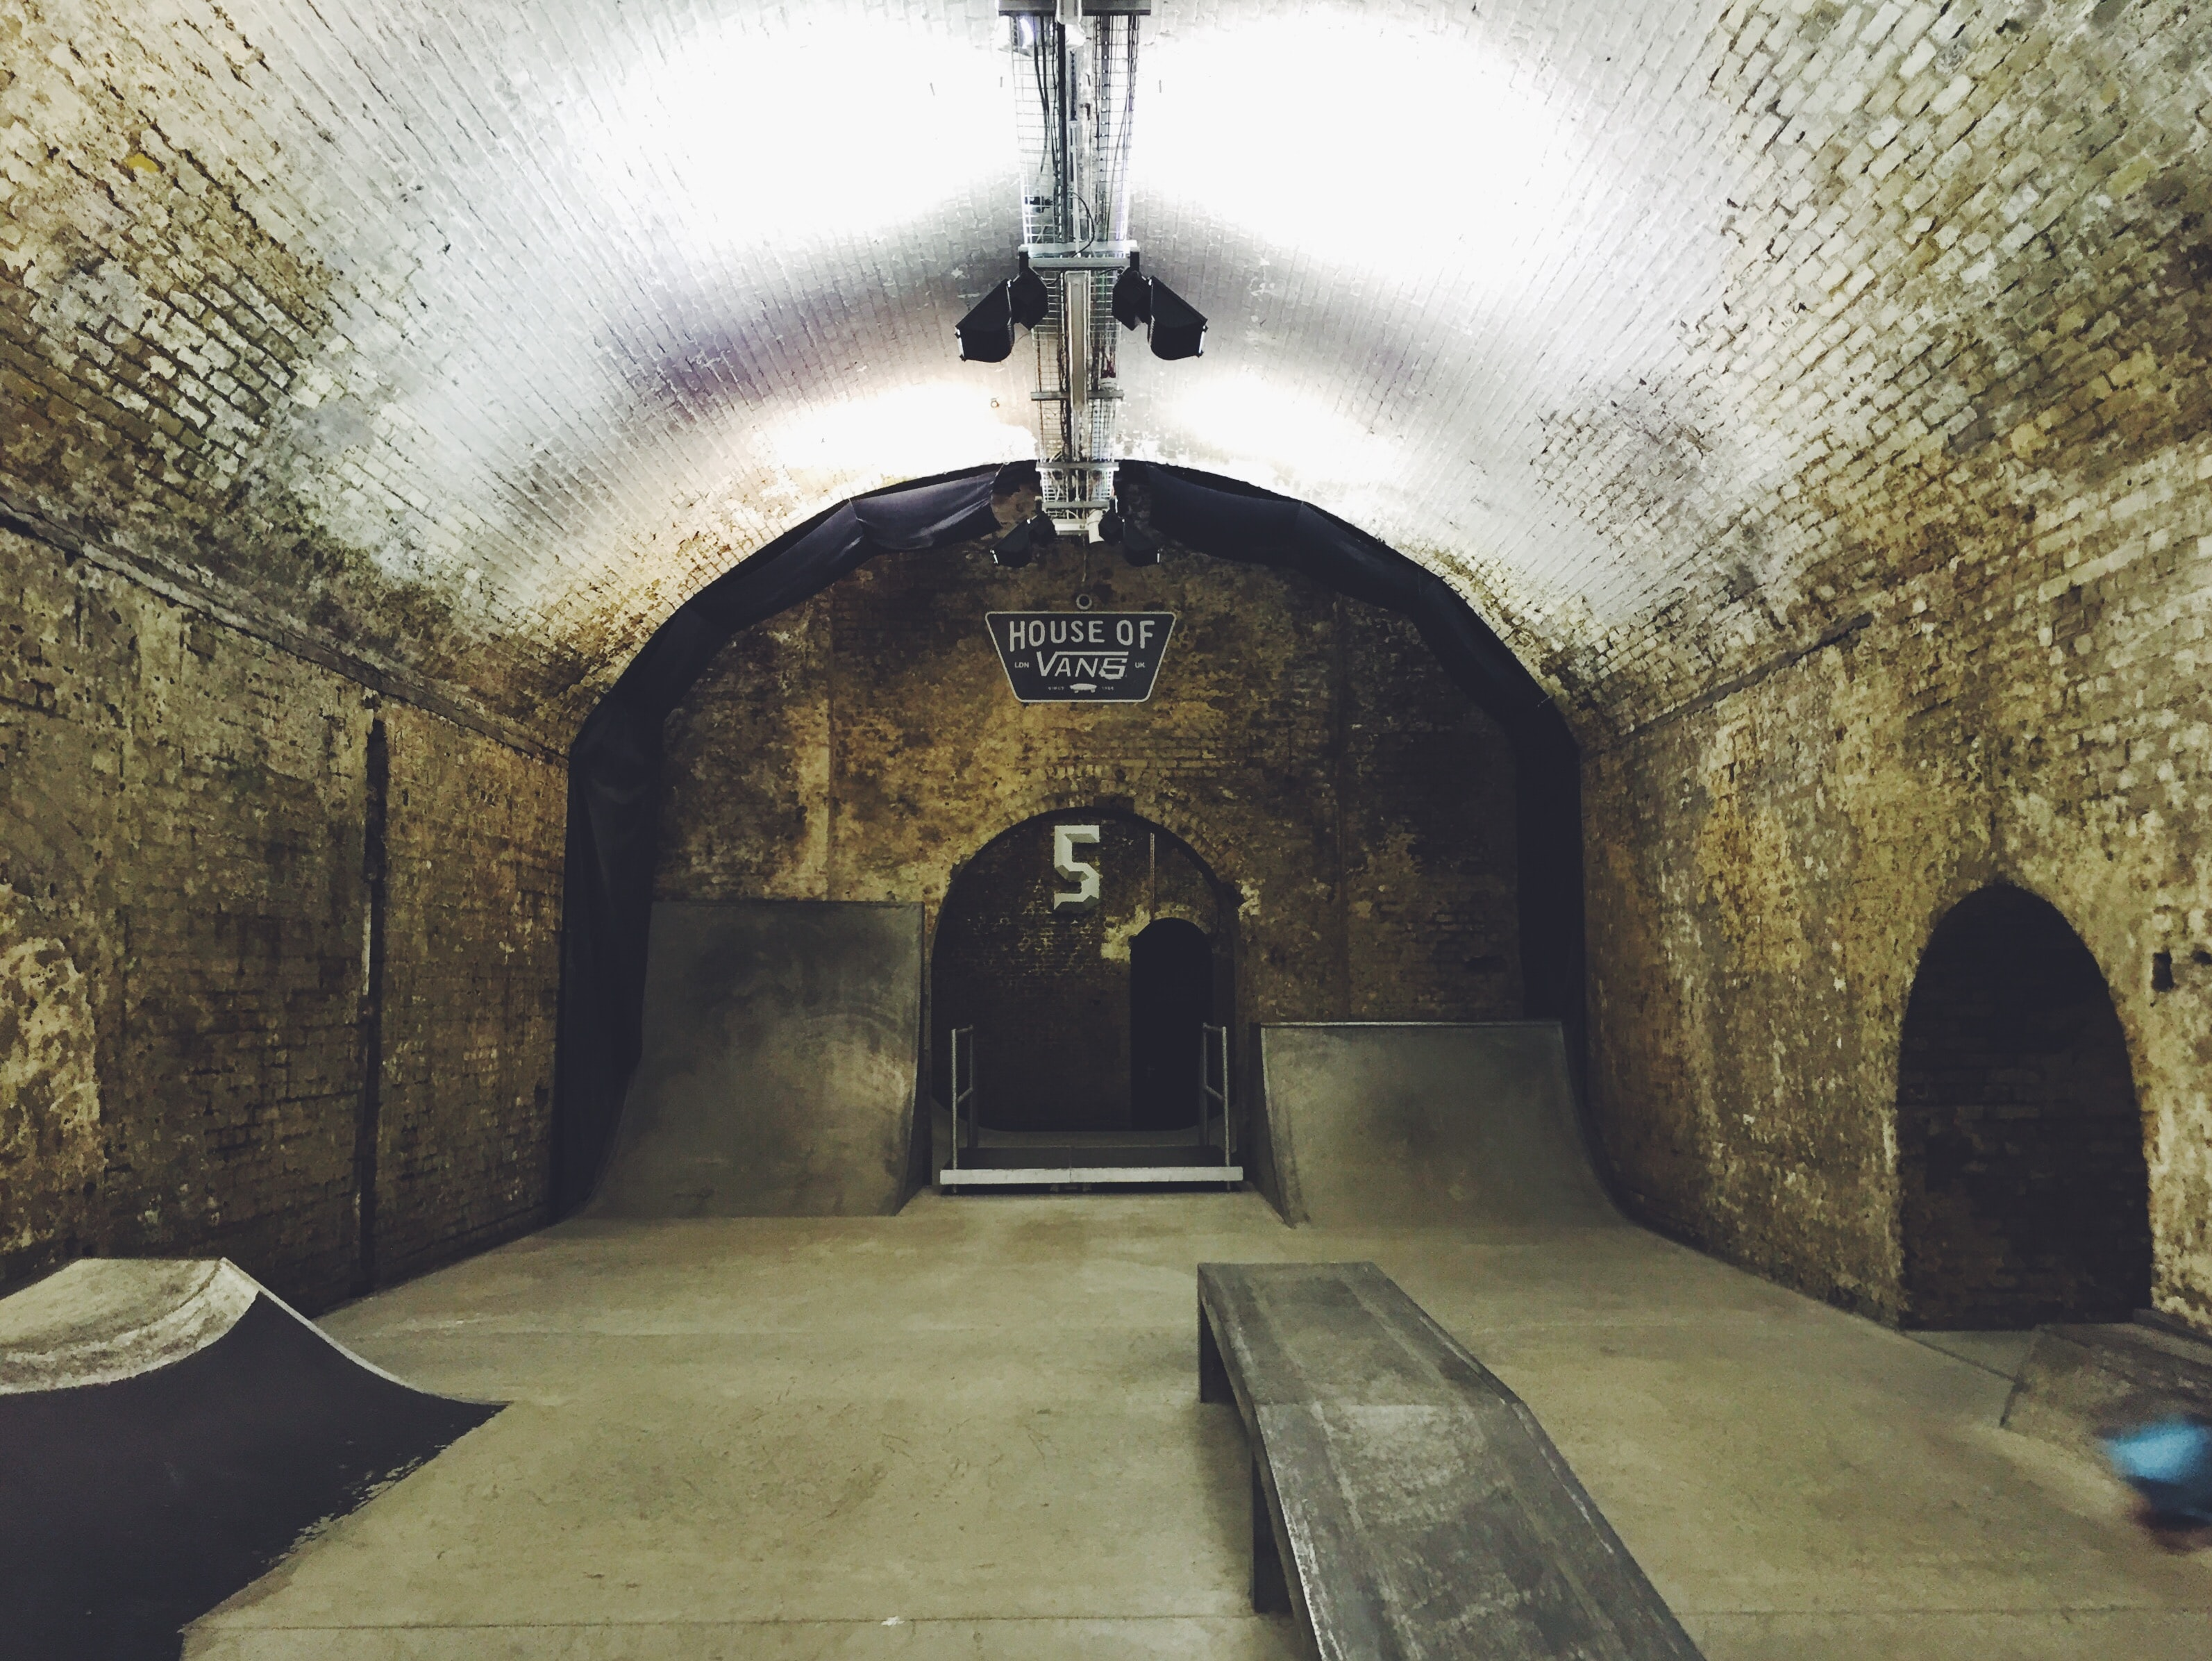 Old tunnel with bricks walls and domed ceiling converted into a skateboarding room complete with ramps and lights